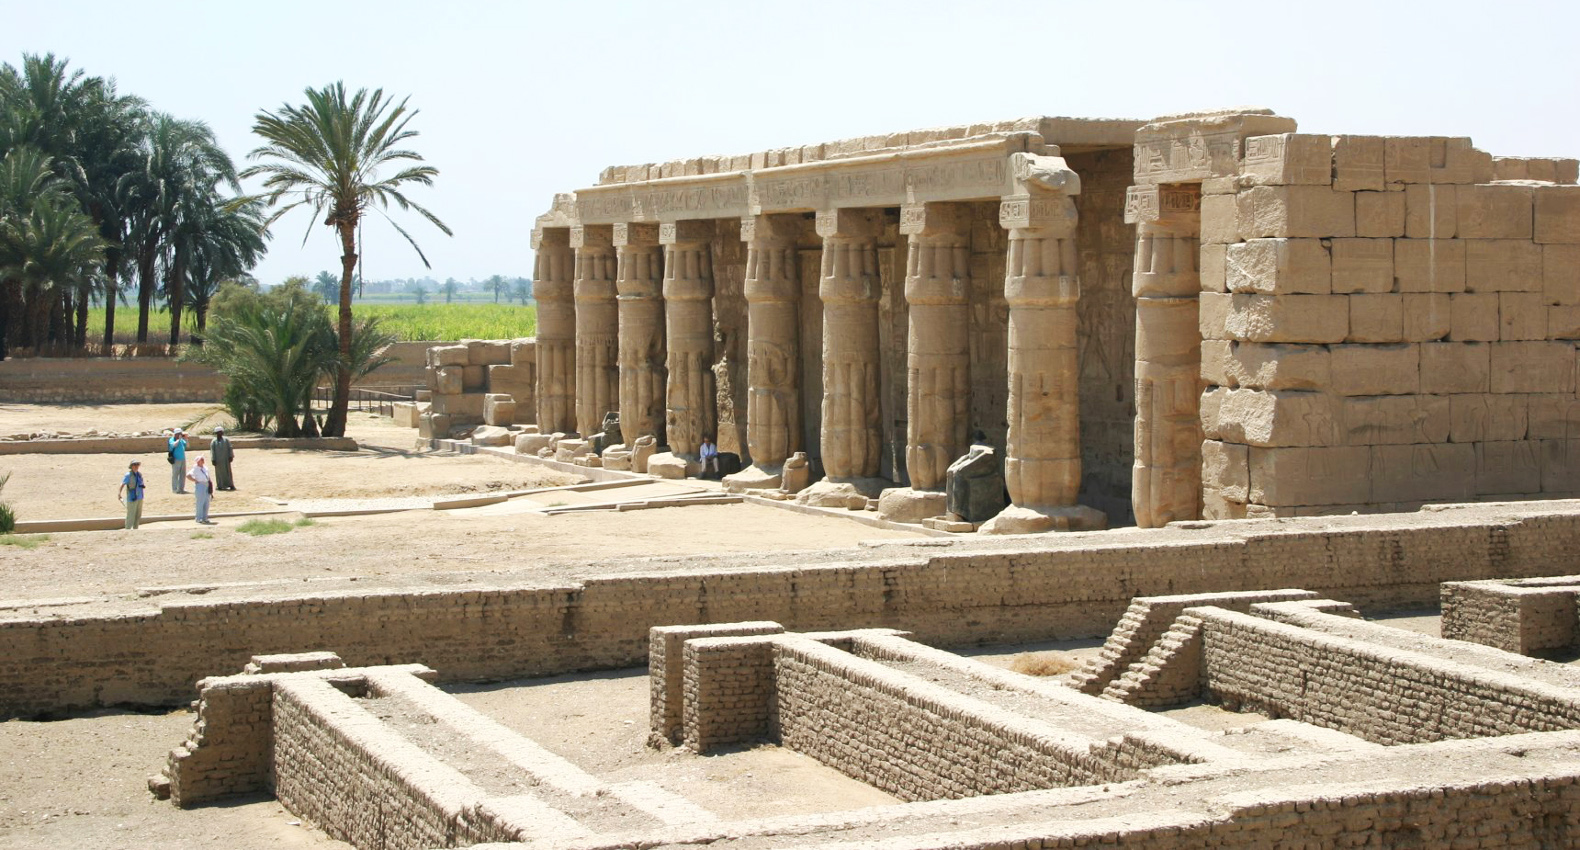 Archaeologists discover ancient lost city in Egypt